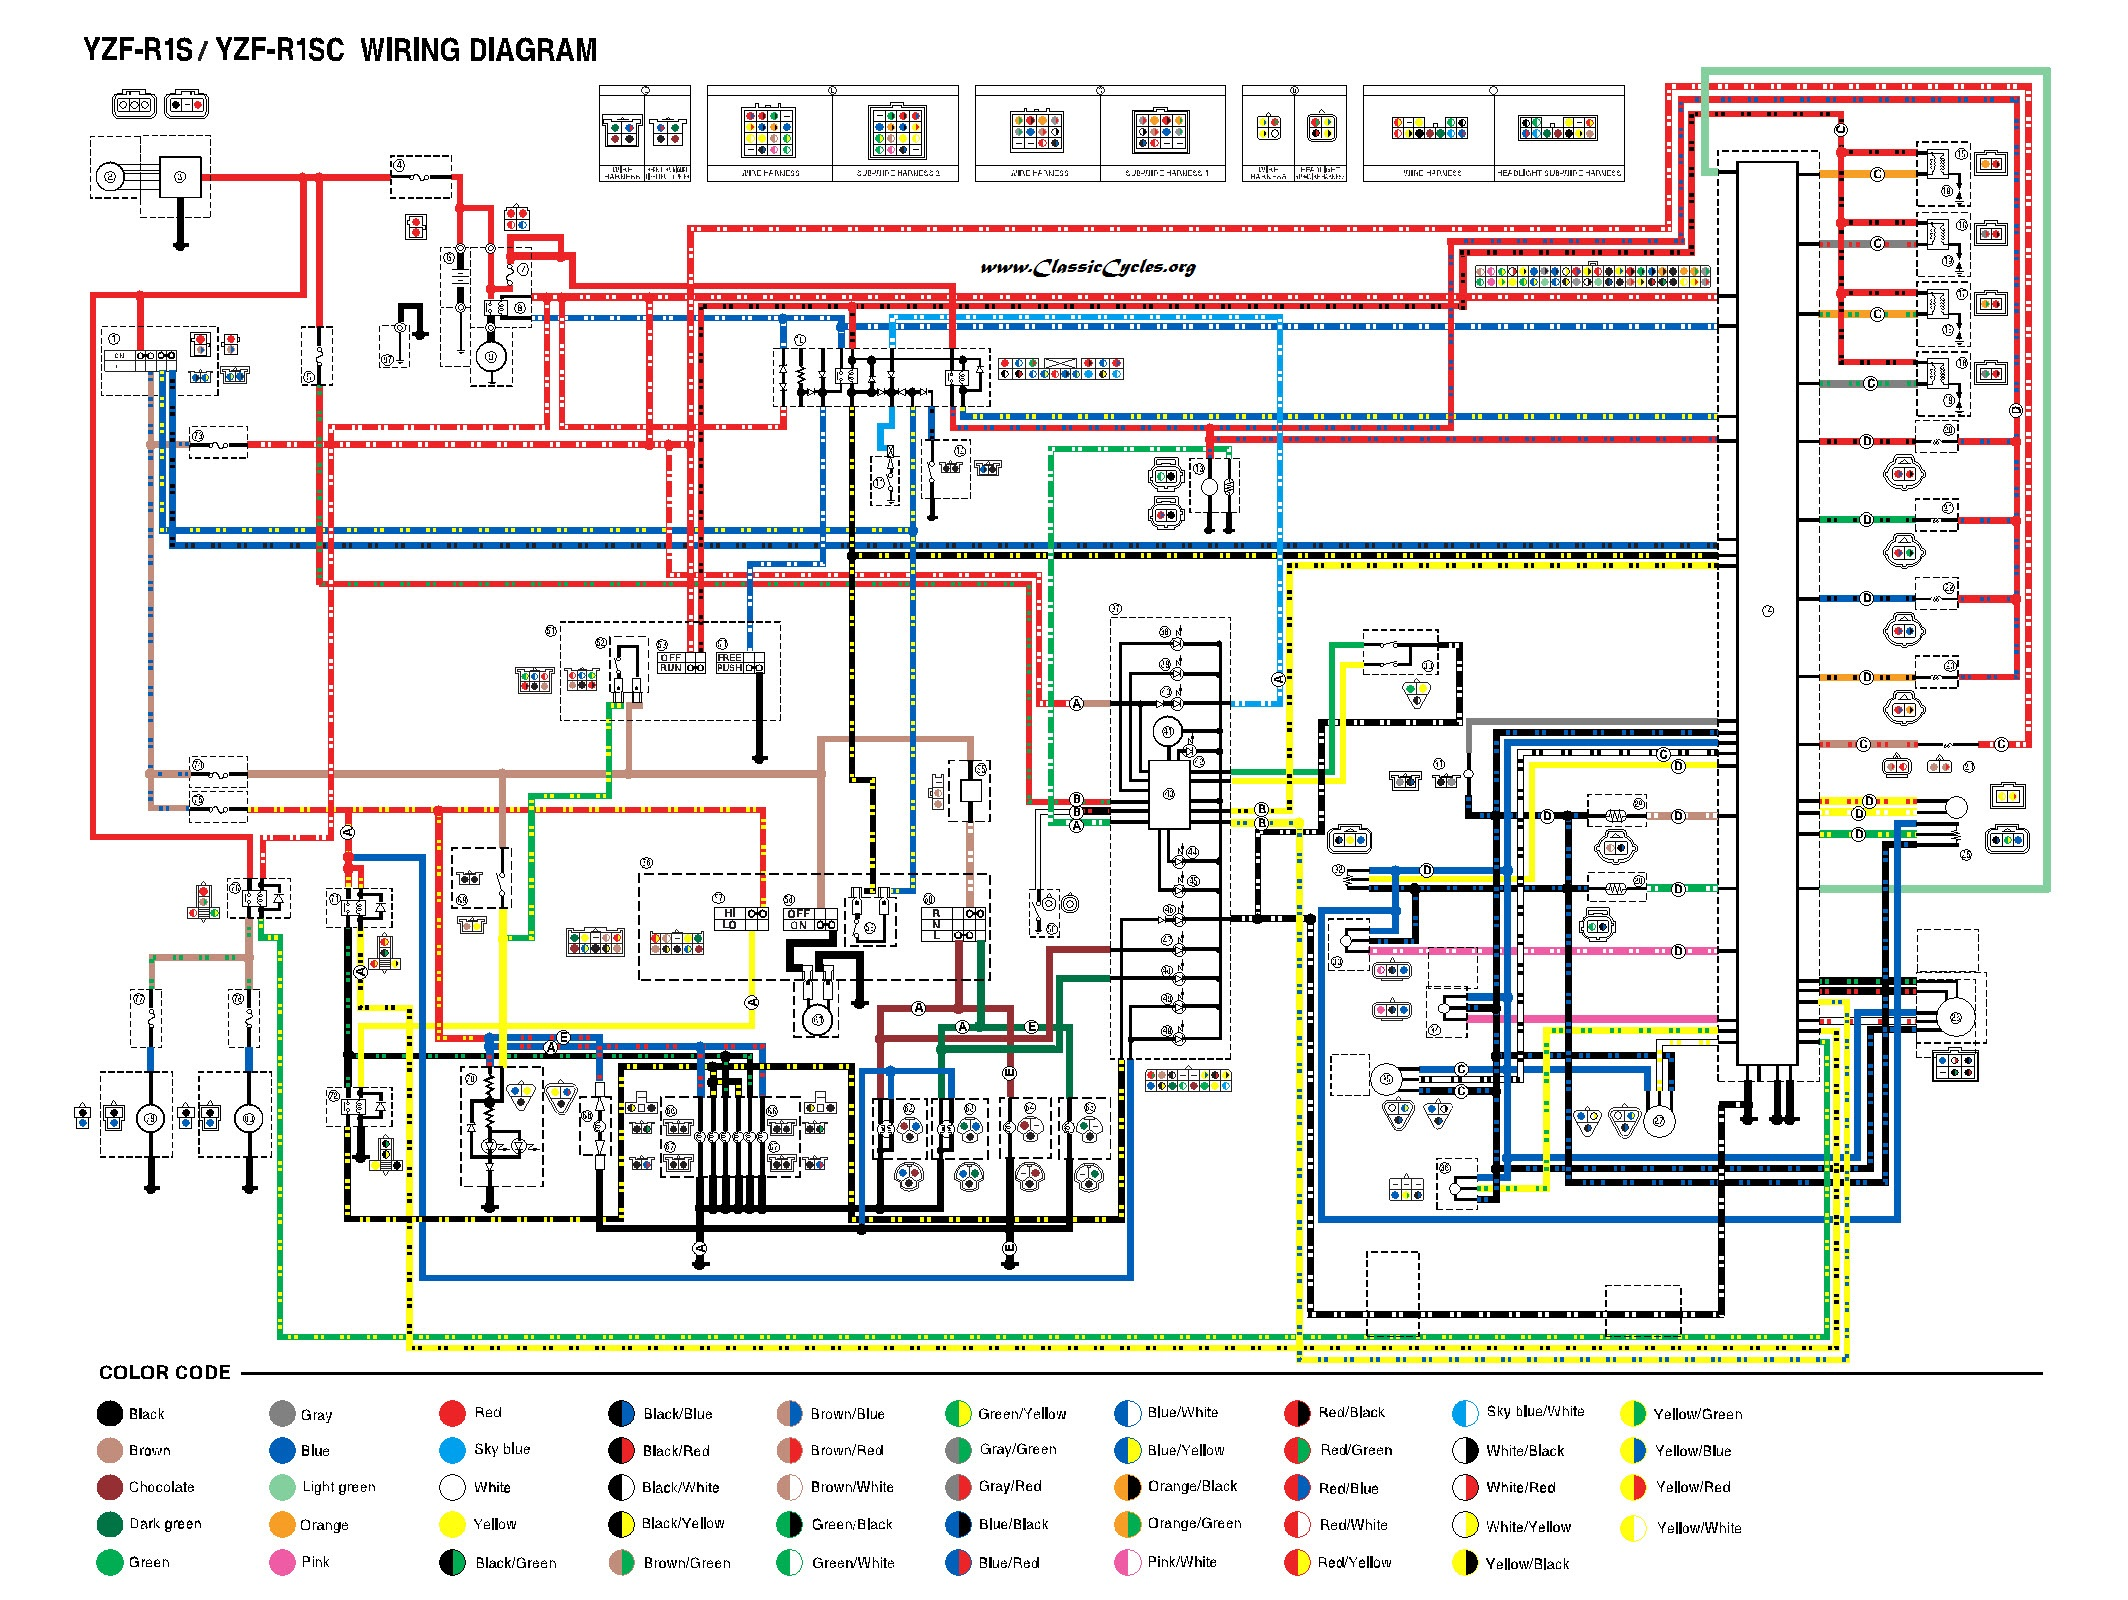 yamaha gx 80 1976 moto yamaha virago 535 wiring diagram yamaha wiring diagrams for diy 2017 Yamaha VXR at gsmx.co